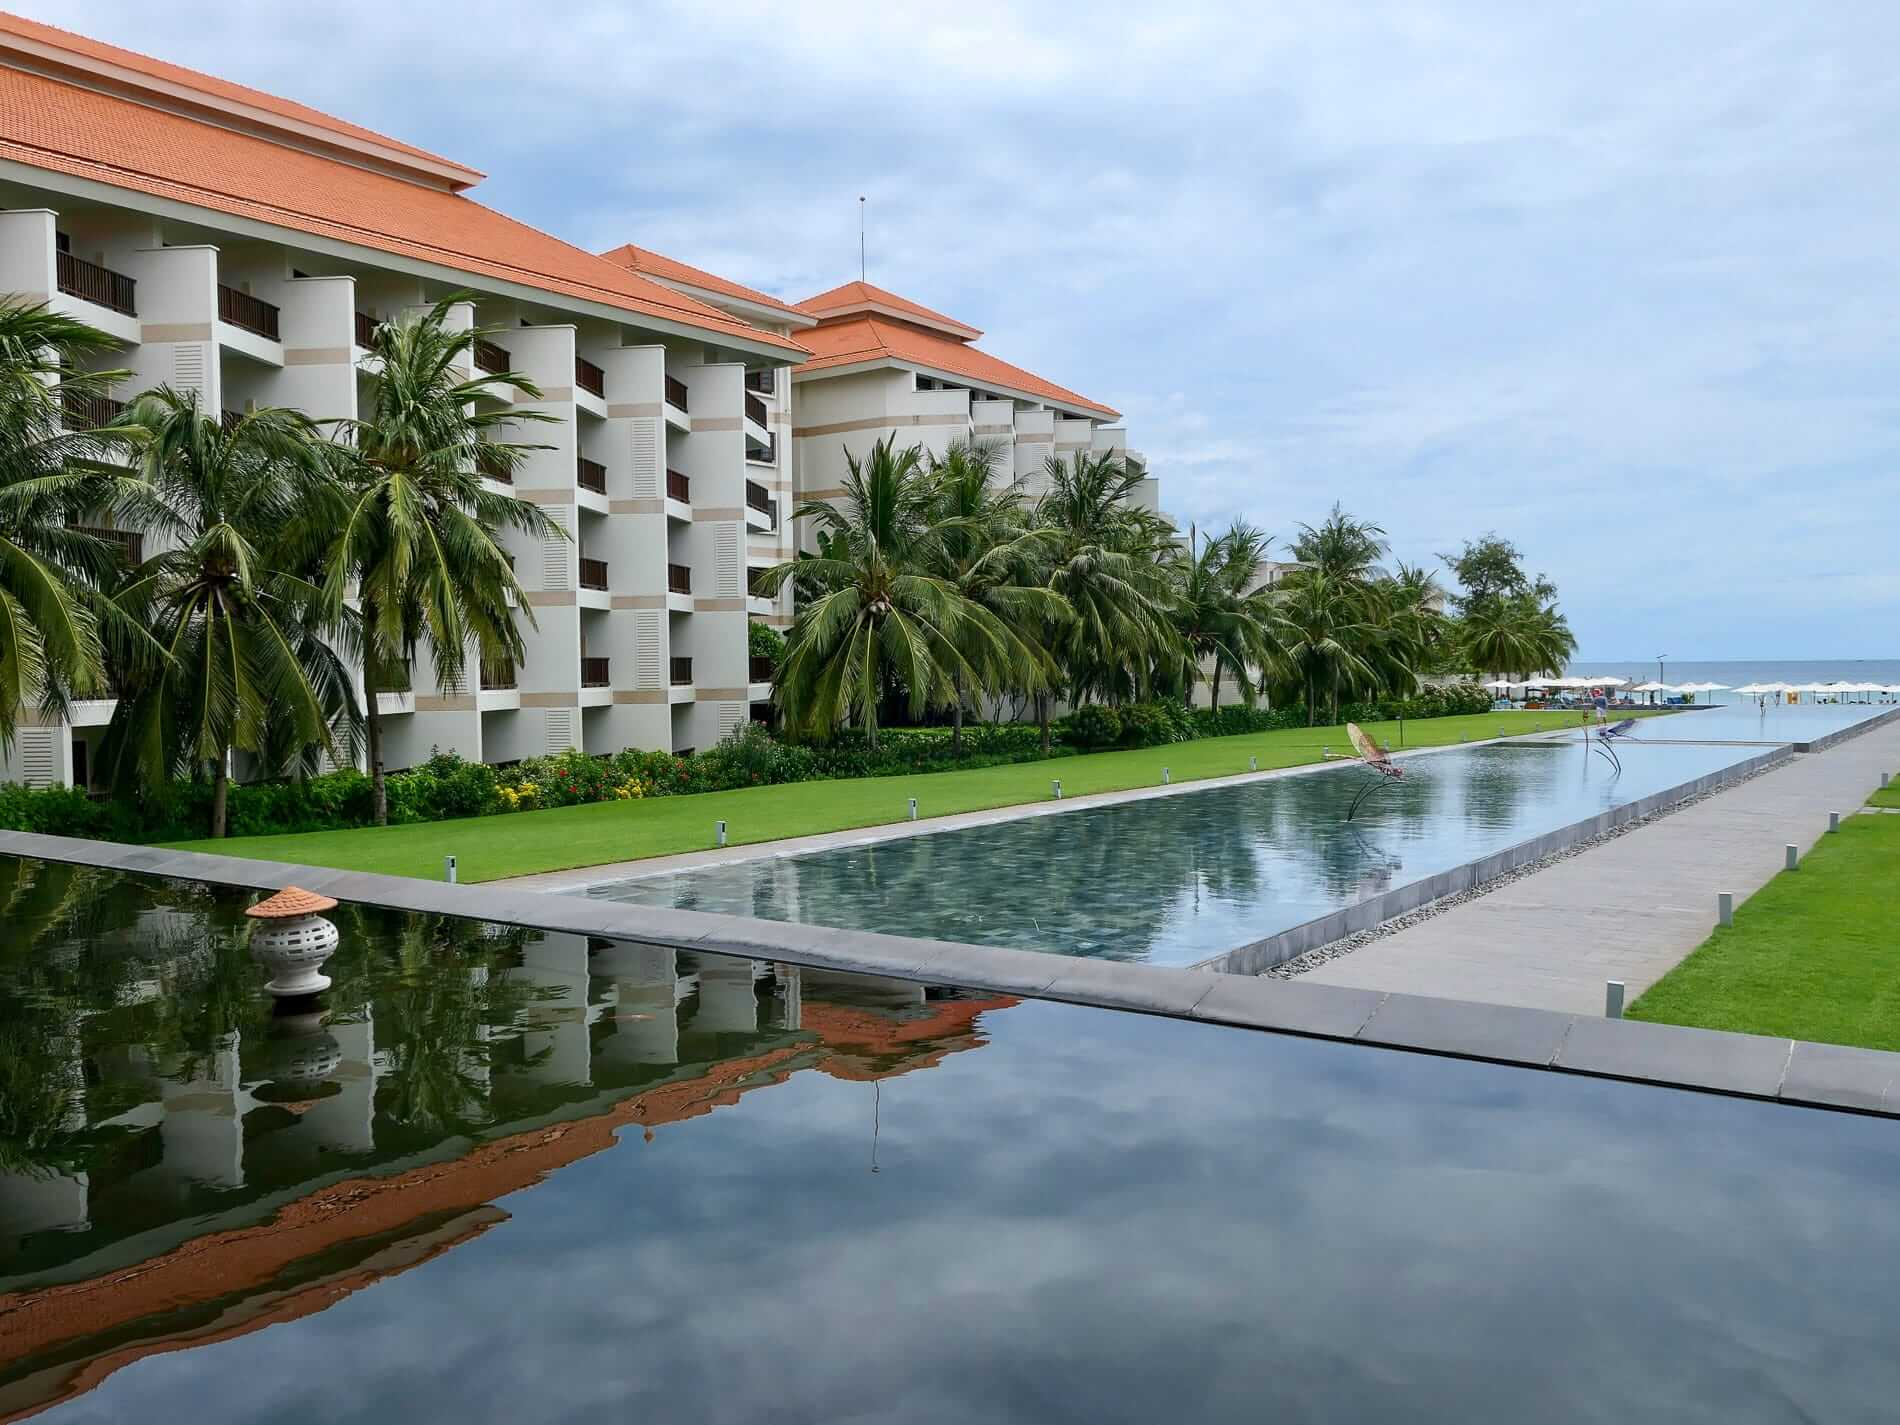 Luxury resorts like the Pullman line My Khe beach in Da Nang